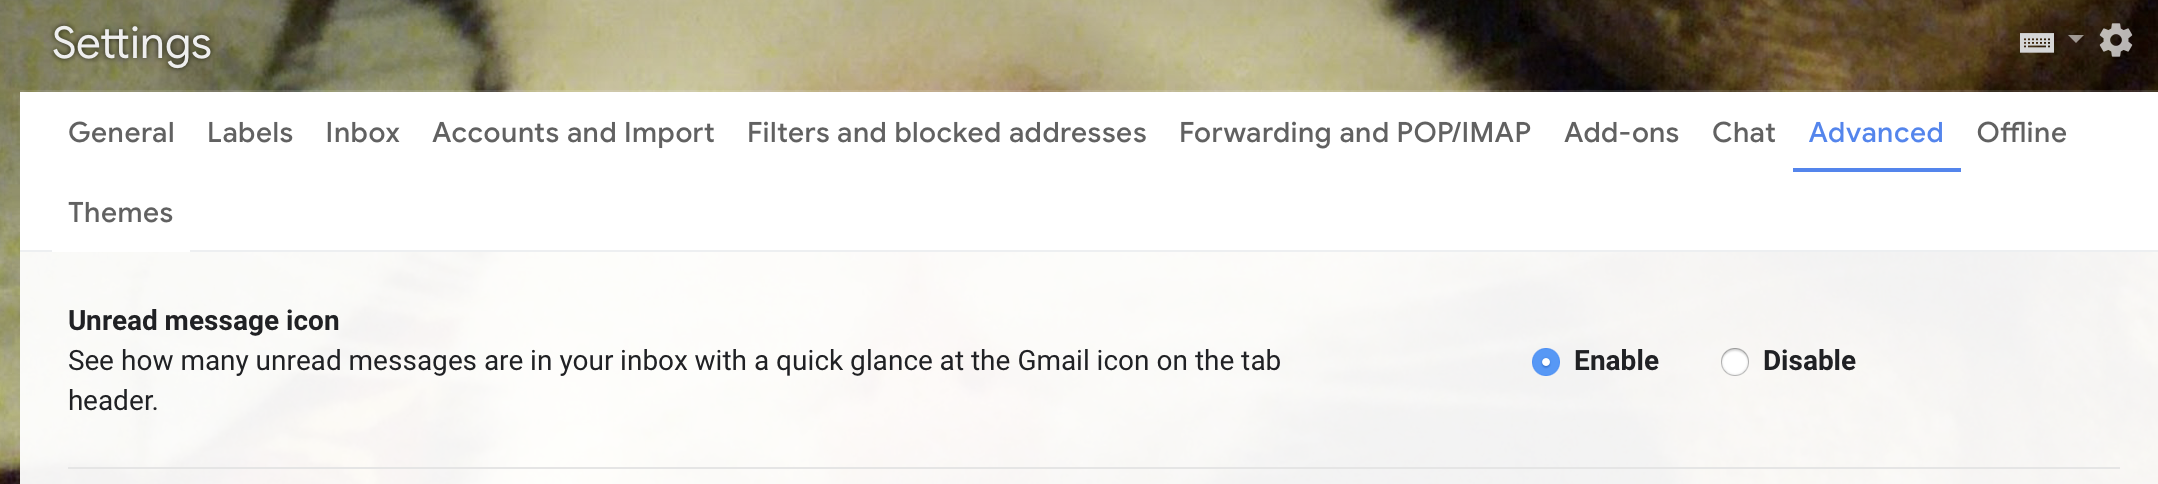 enable advanced gmail unread message icon